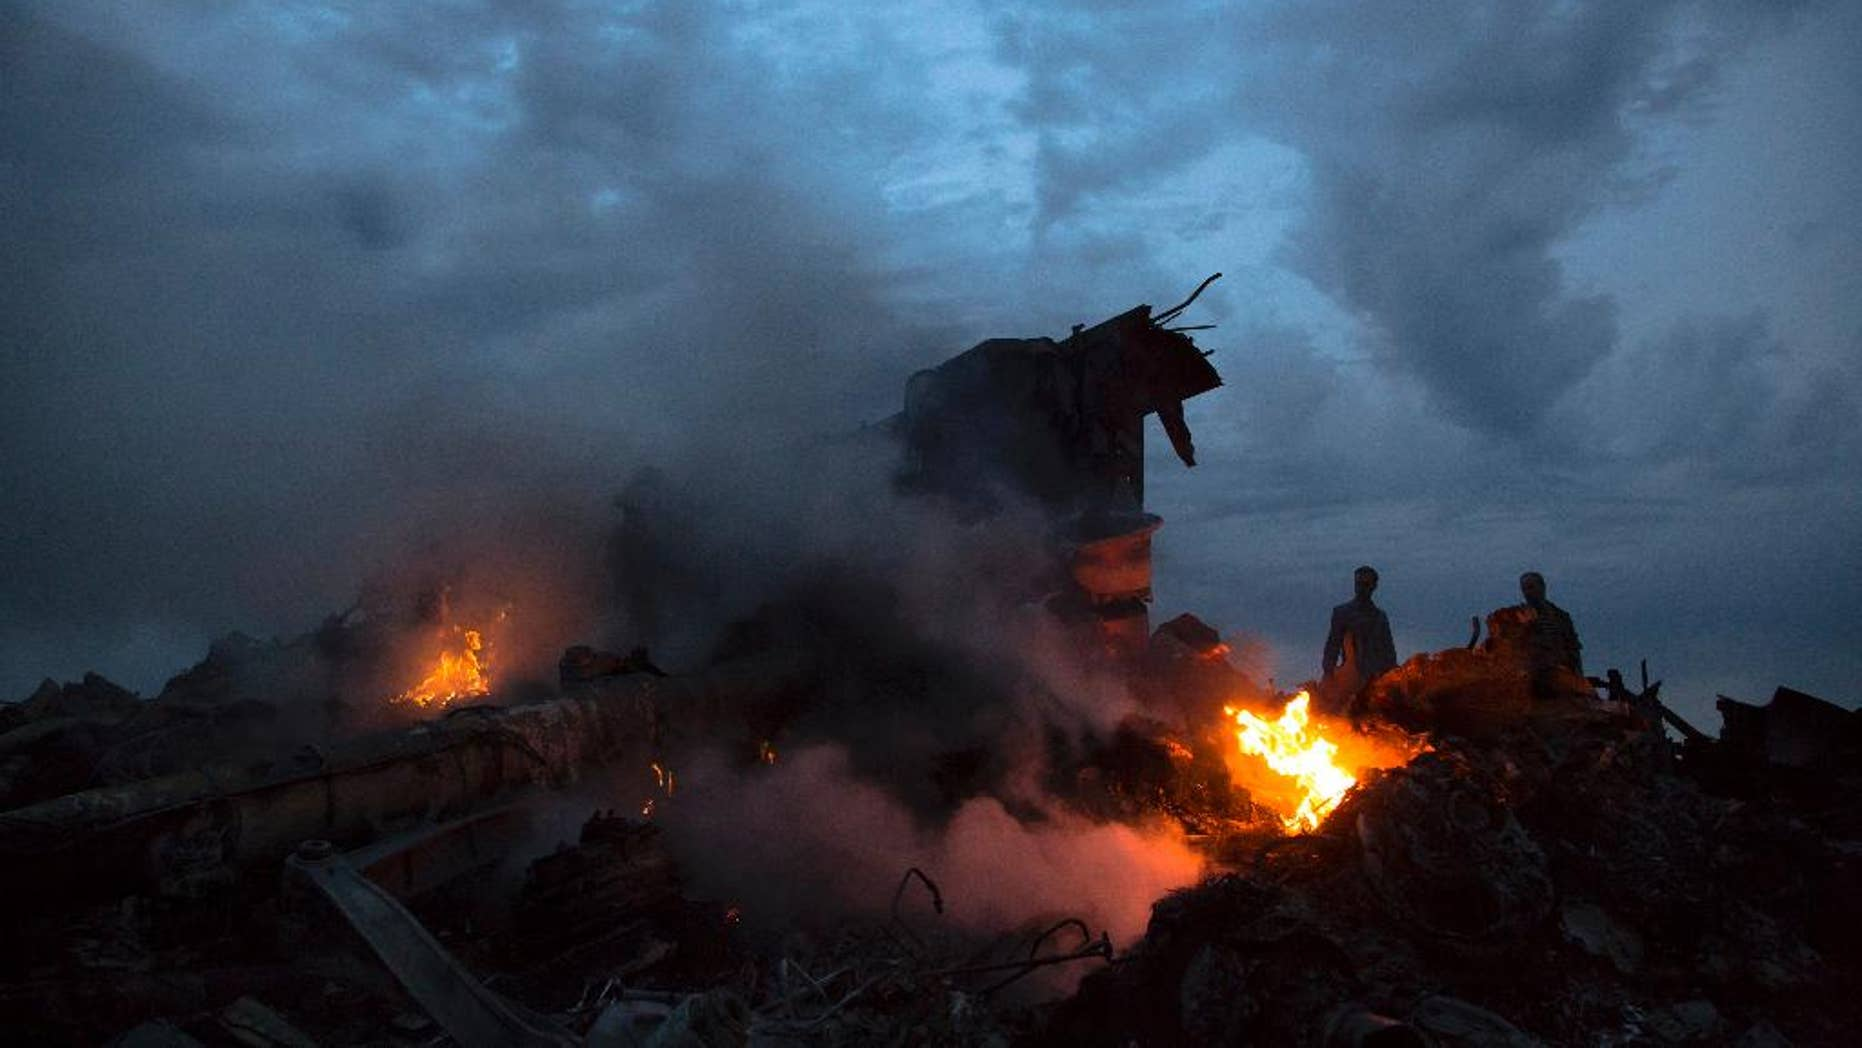 File - This July 17, 2014, file photo shows people walking amongst burning debris at the crash site of Malaysia Airlines Flight 17 near the village of Hrabove, eastern Ukraine.  Ukraine said the passenger plane was shot down as it flew over the country, killing all 298 people on board. A series of unanswered questions about the downing the flight shows the limits of U.S. intelligence-gathering even when it is intensely focused, as it has been in Ukraine since Russia seized Crimea in March. (AP Photo/Dmitry Lovetsky, File)